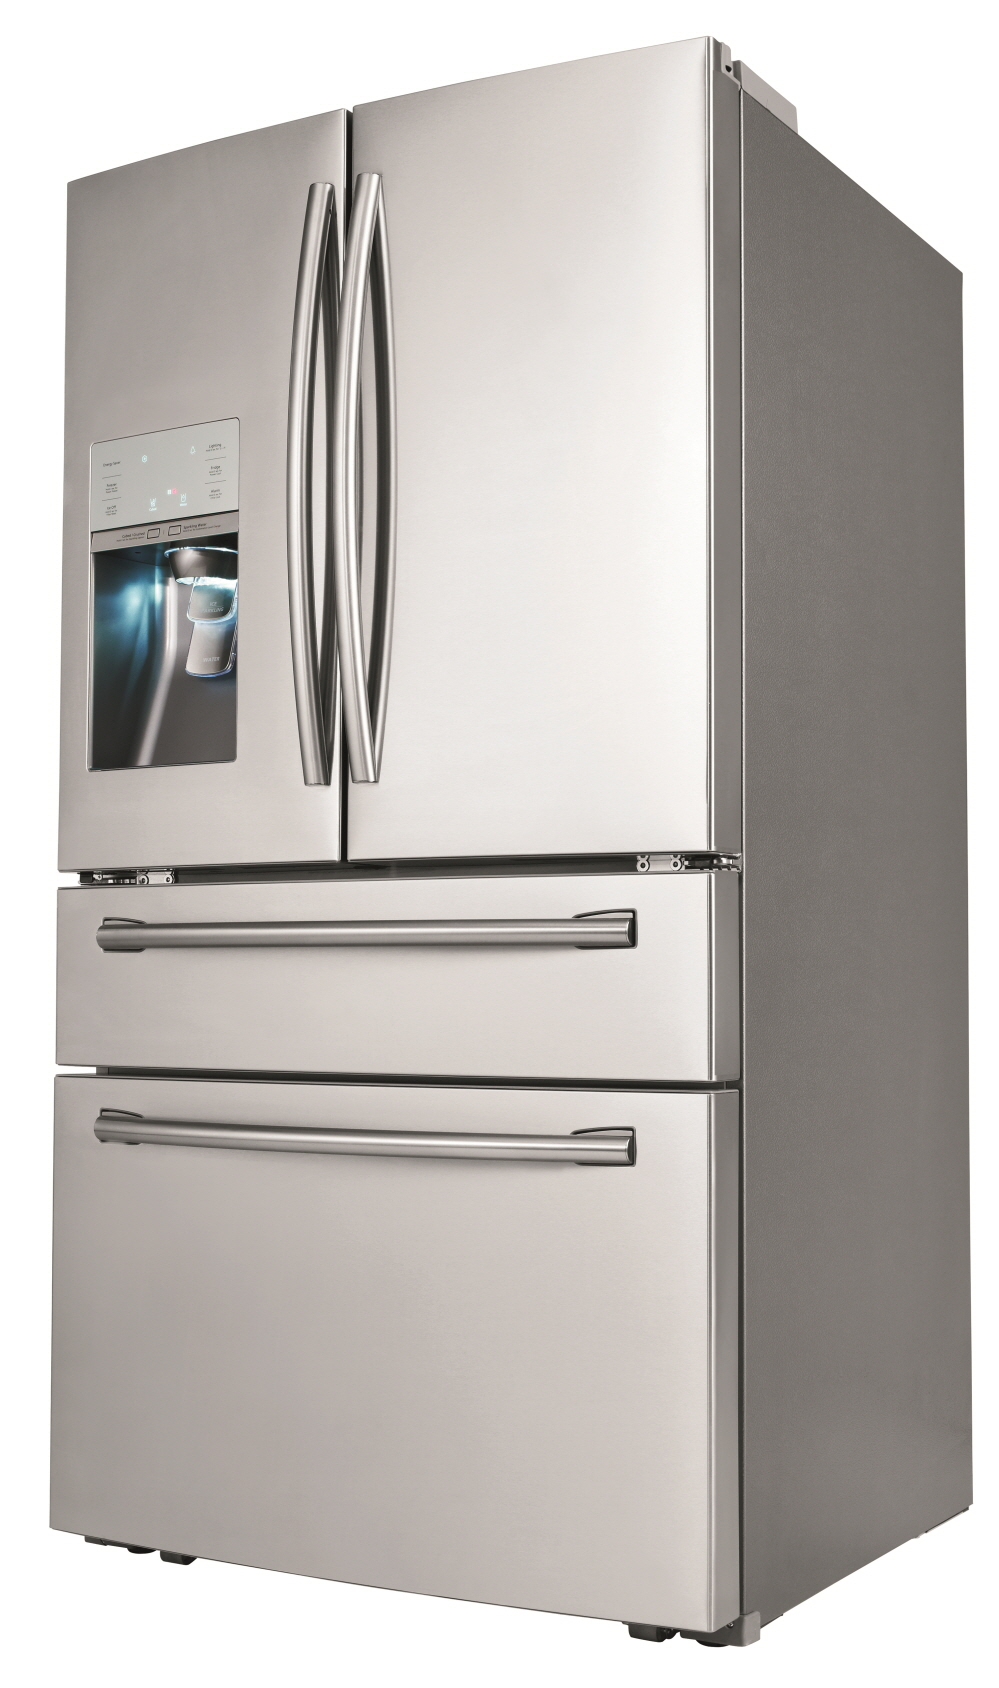 Samsung Releases the First-Ever Four-Door Refrigerator with Sparkling Water Dispenser